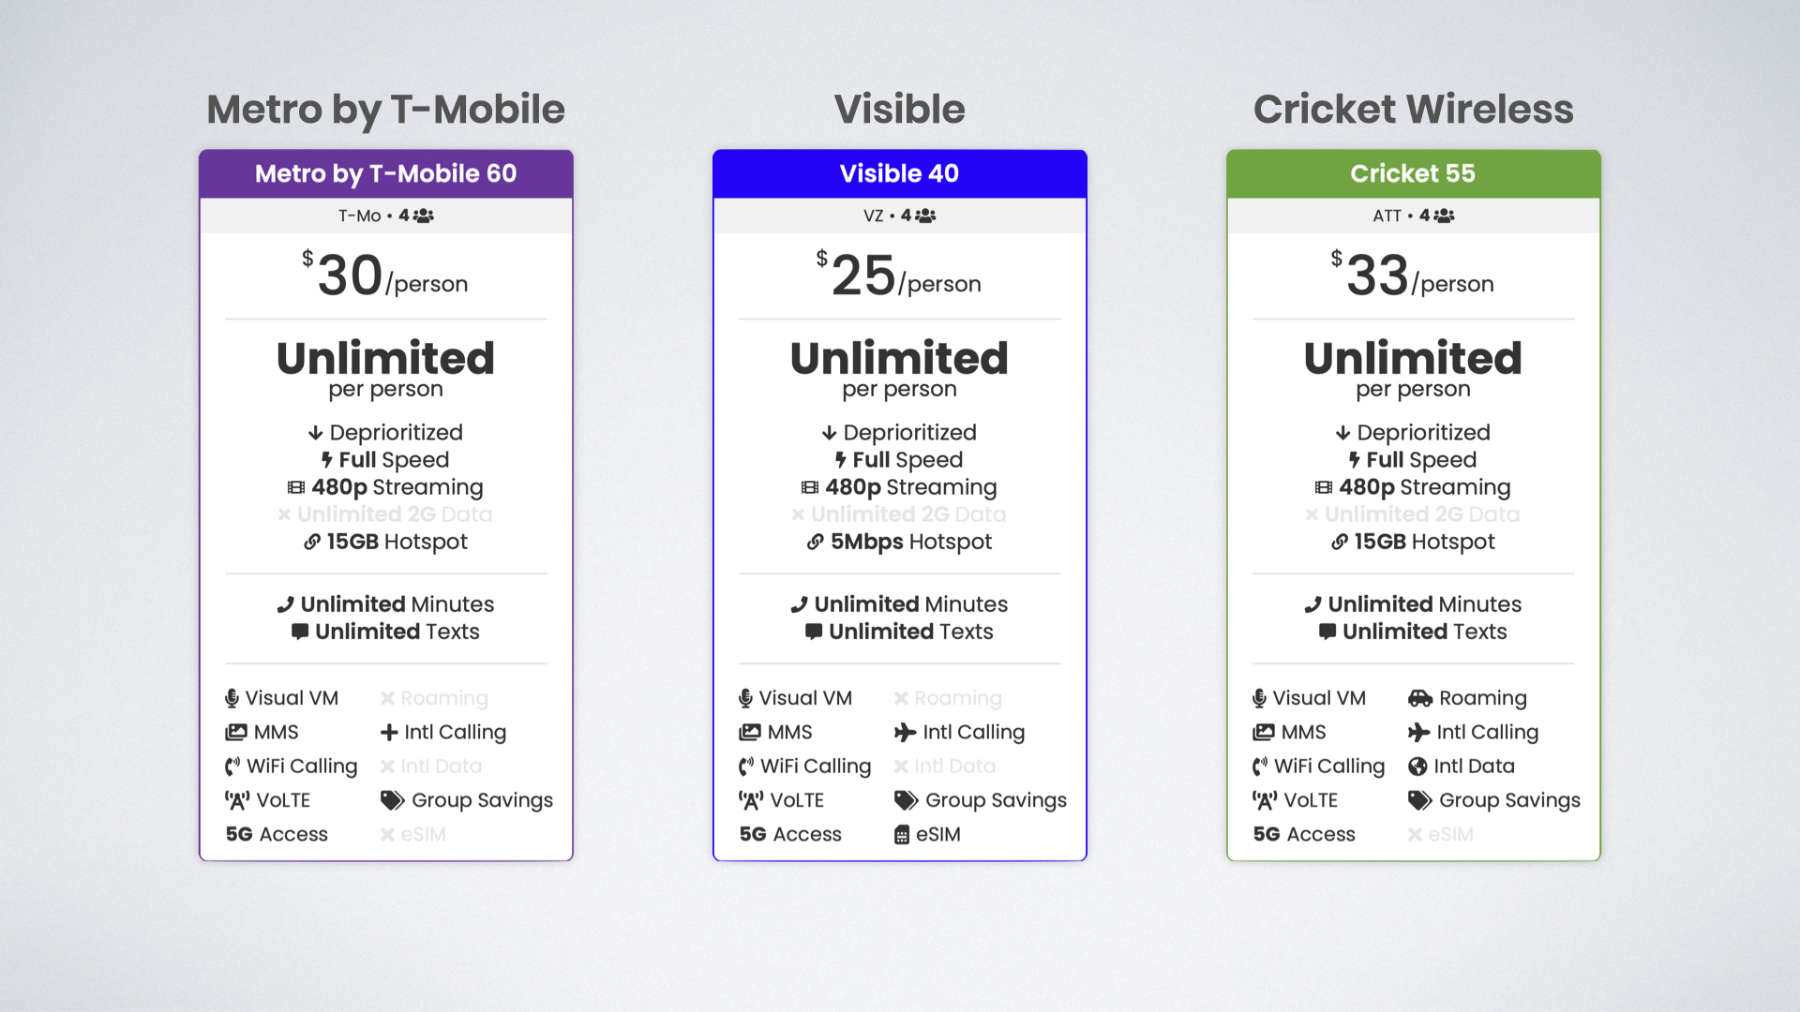 Metro by T-Mobile four line plan for $30 per line, Visible four line plan for $25 per line, and Cricket Wireless four line plan for $33 per line